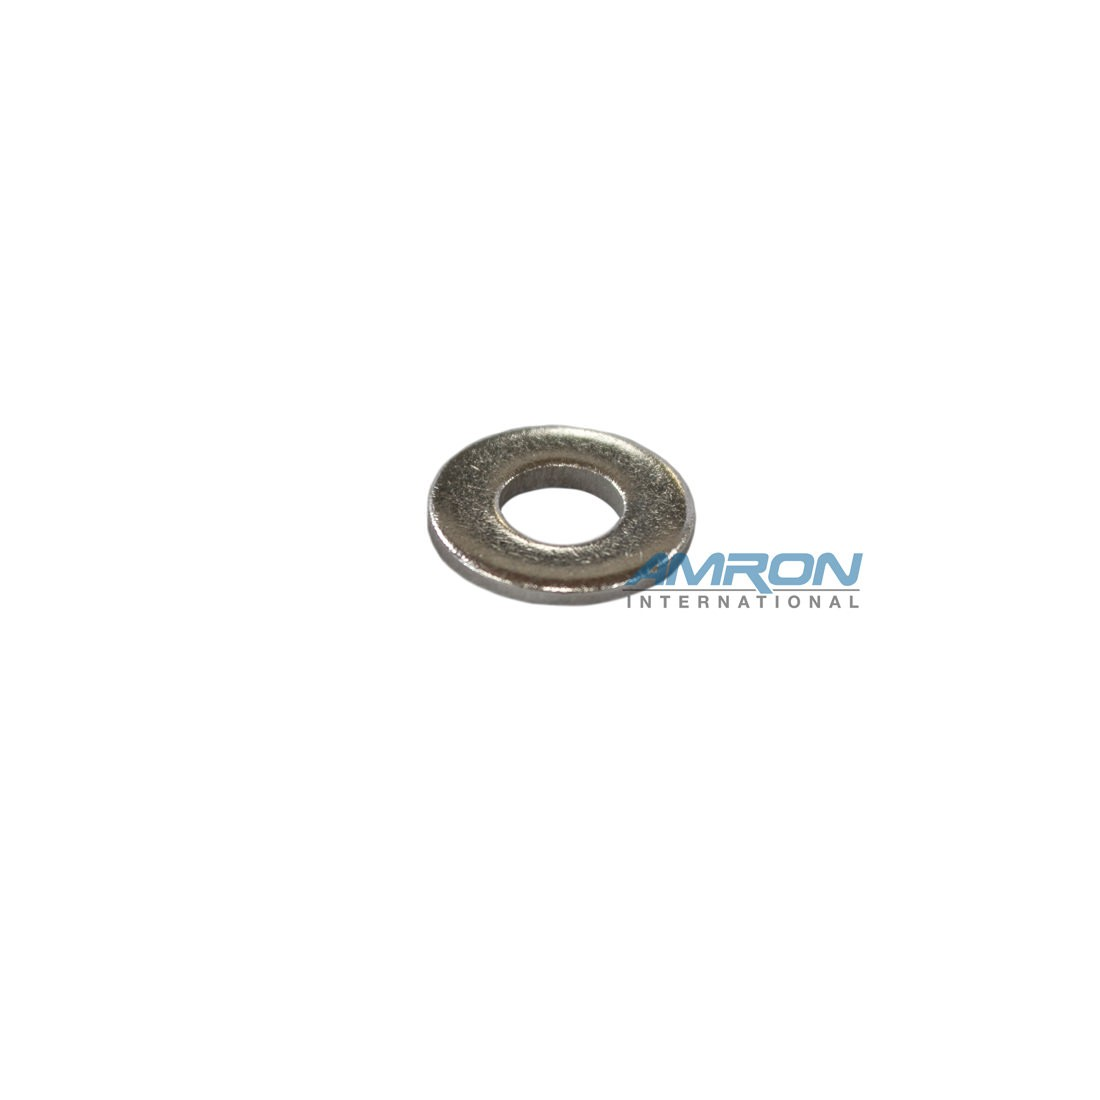 Kirby Morgan 530-527 Spacer